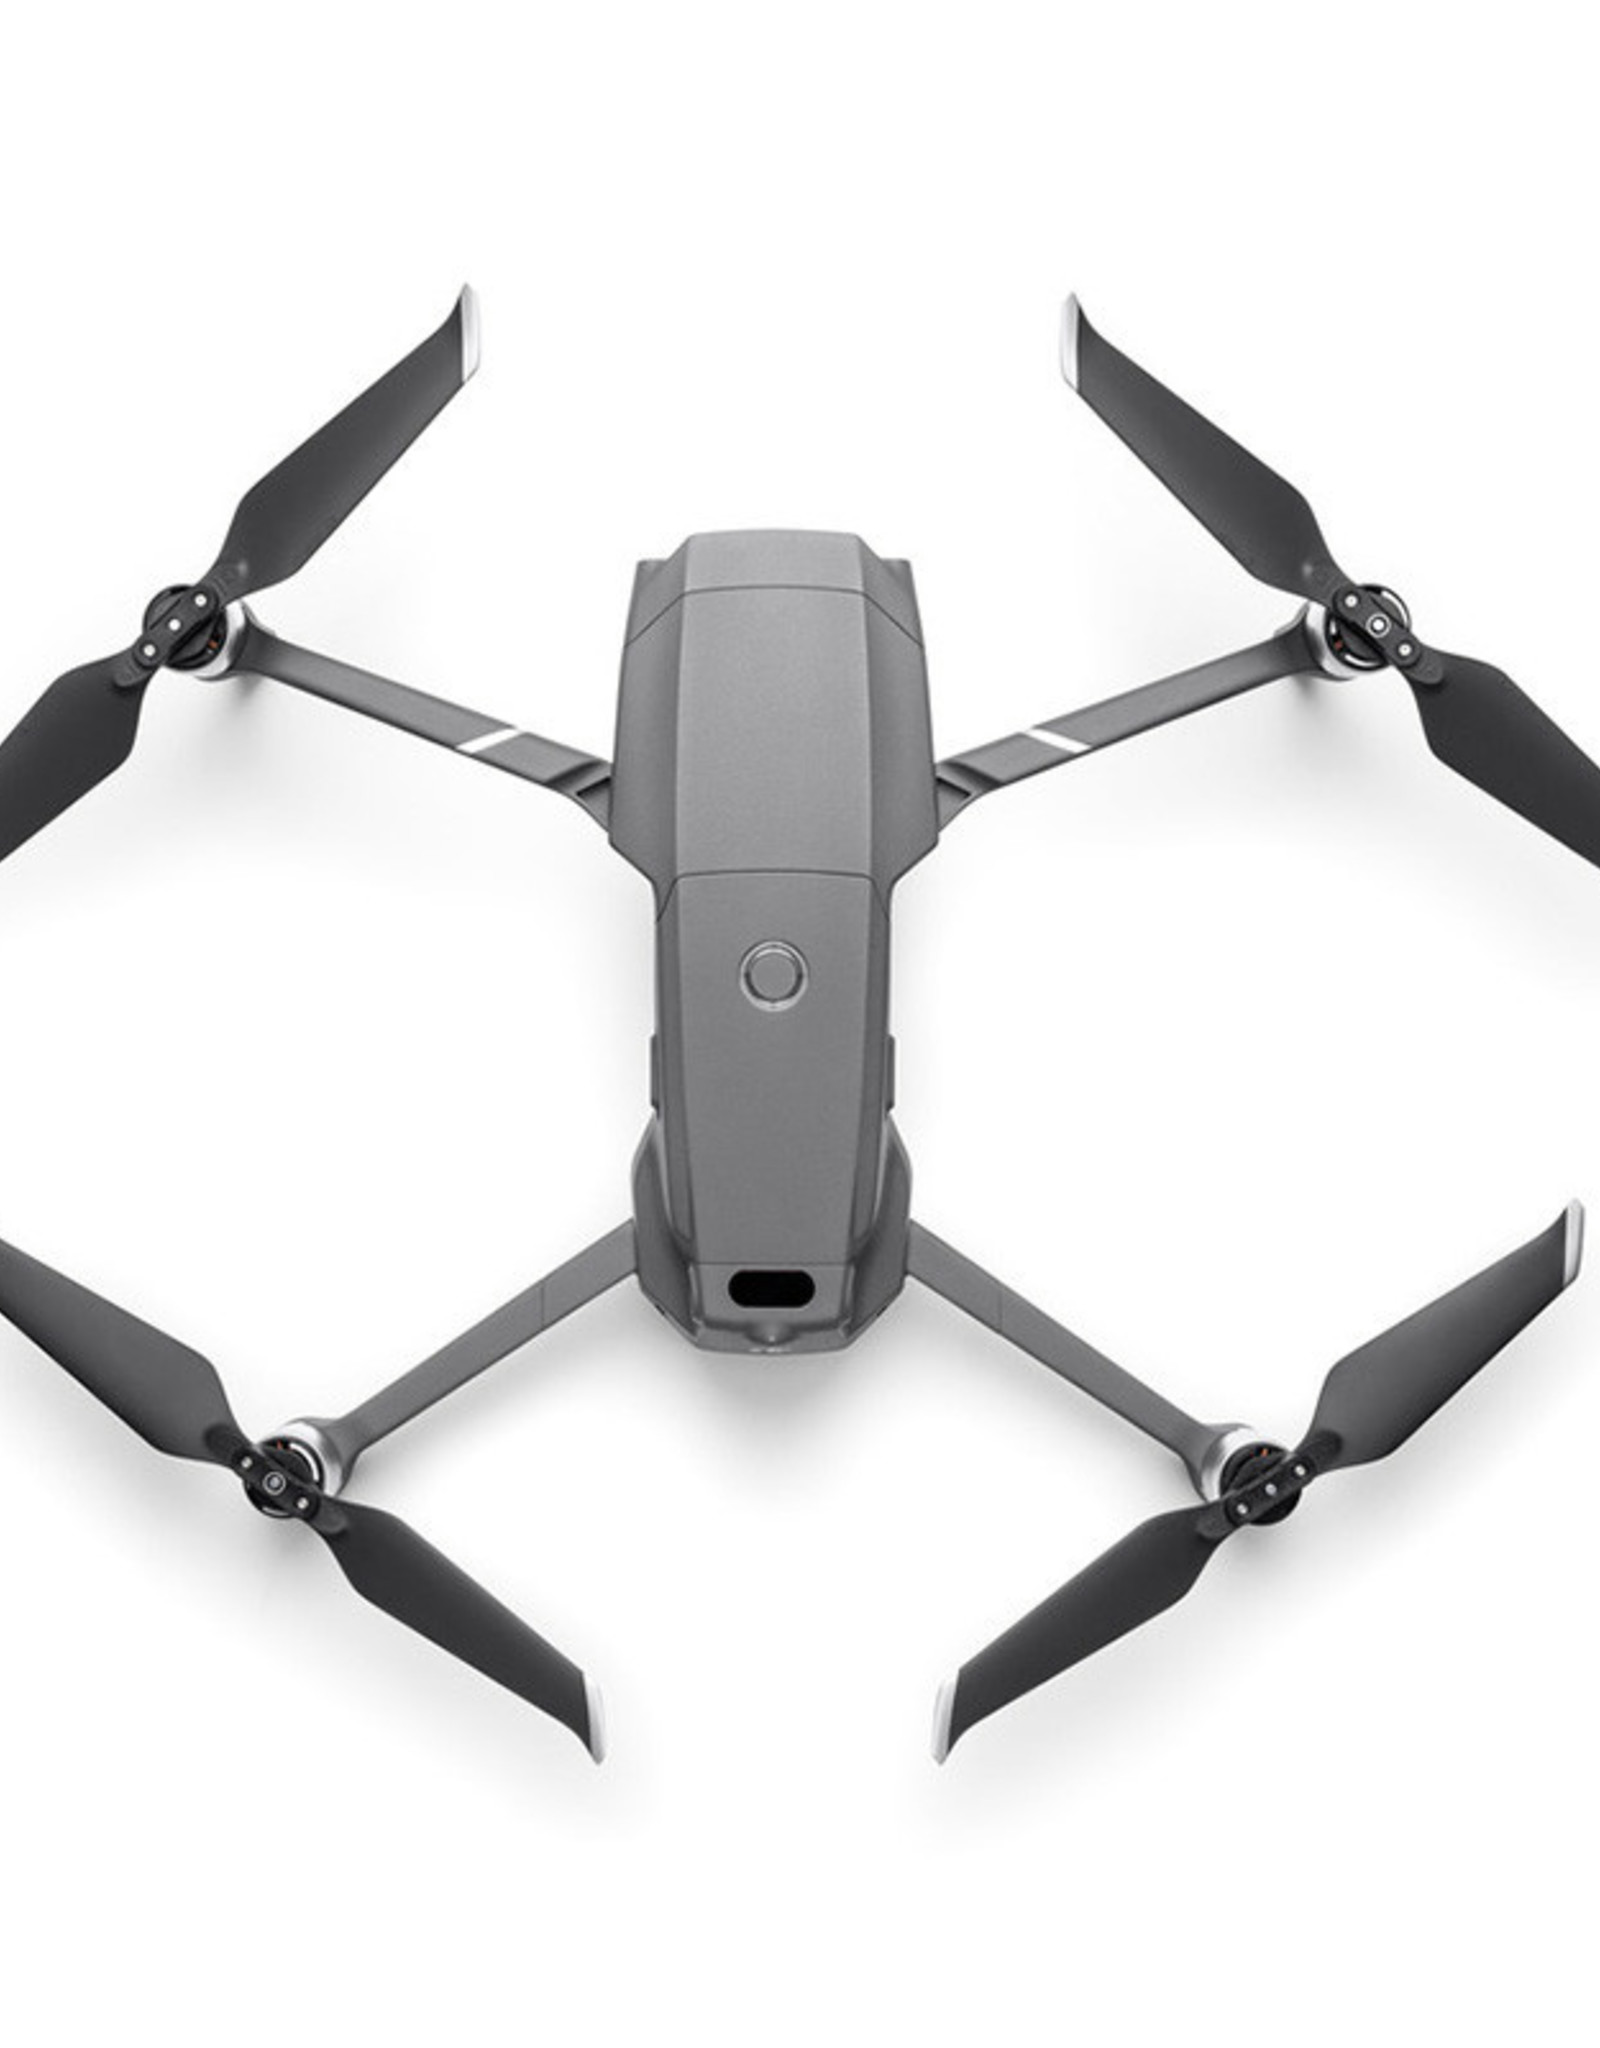 DJI Mavic 2 Pro with Smart Controller